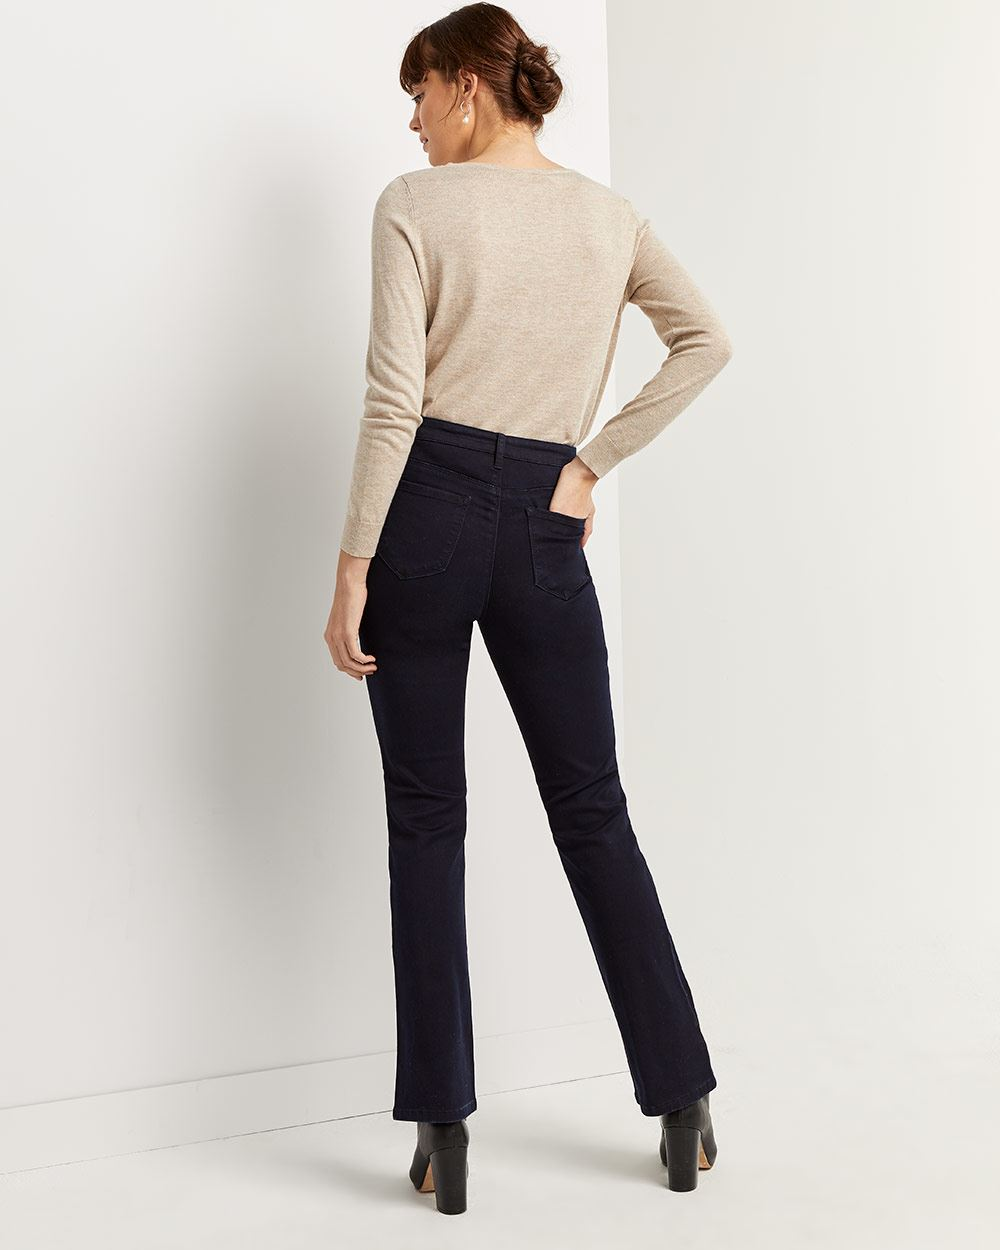 High Waist Bootcut Jeans The Signature Soft